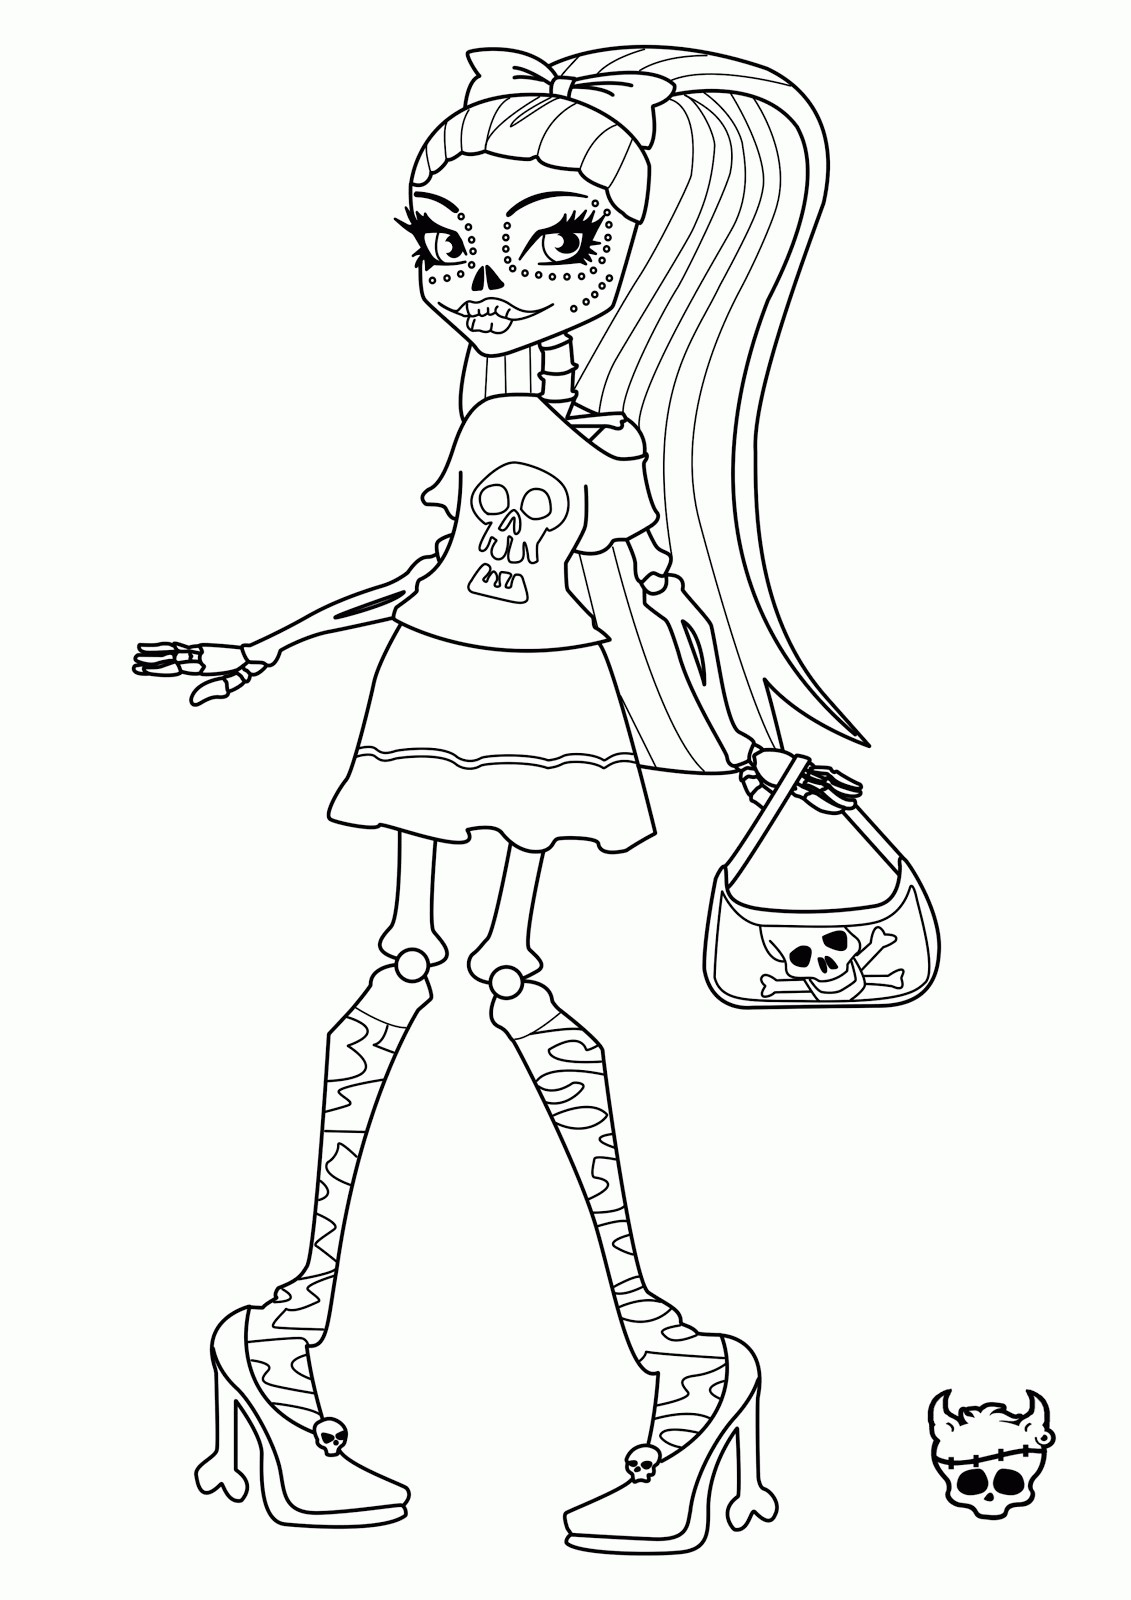 Monster High Coloring Pages Cartoon Jr Fresh Frankie Stein Color to Print Of Inspiring Monster High Coloring Pages Colouring Sheets Printables Gallery